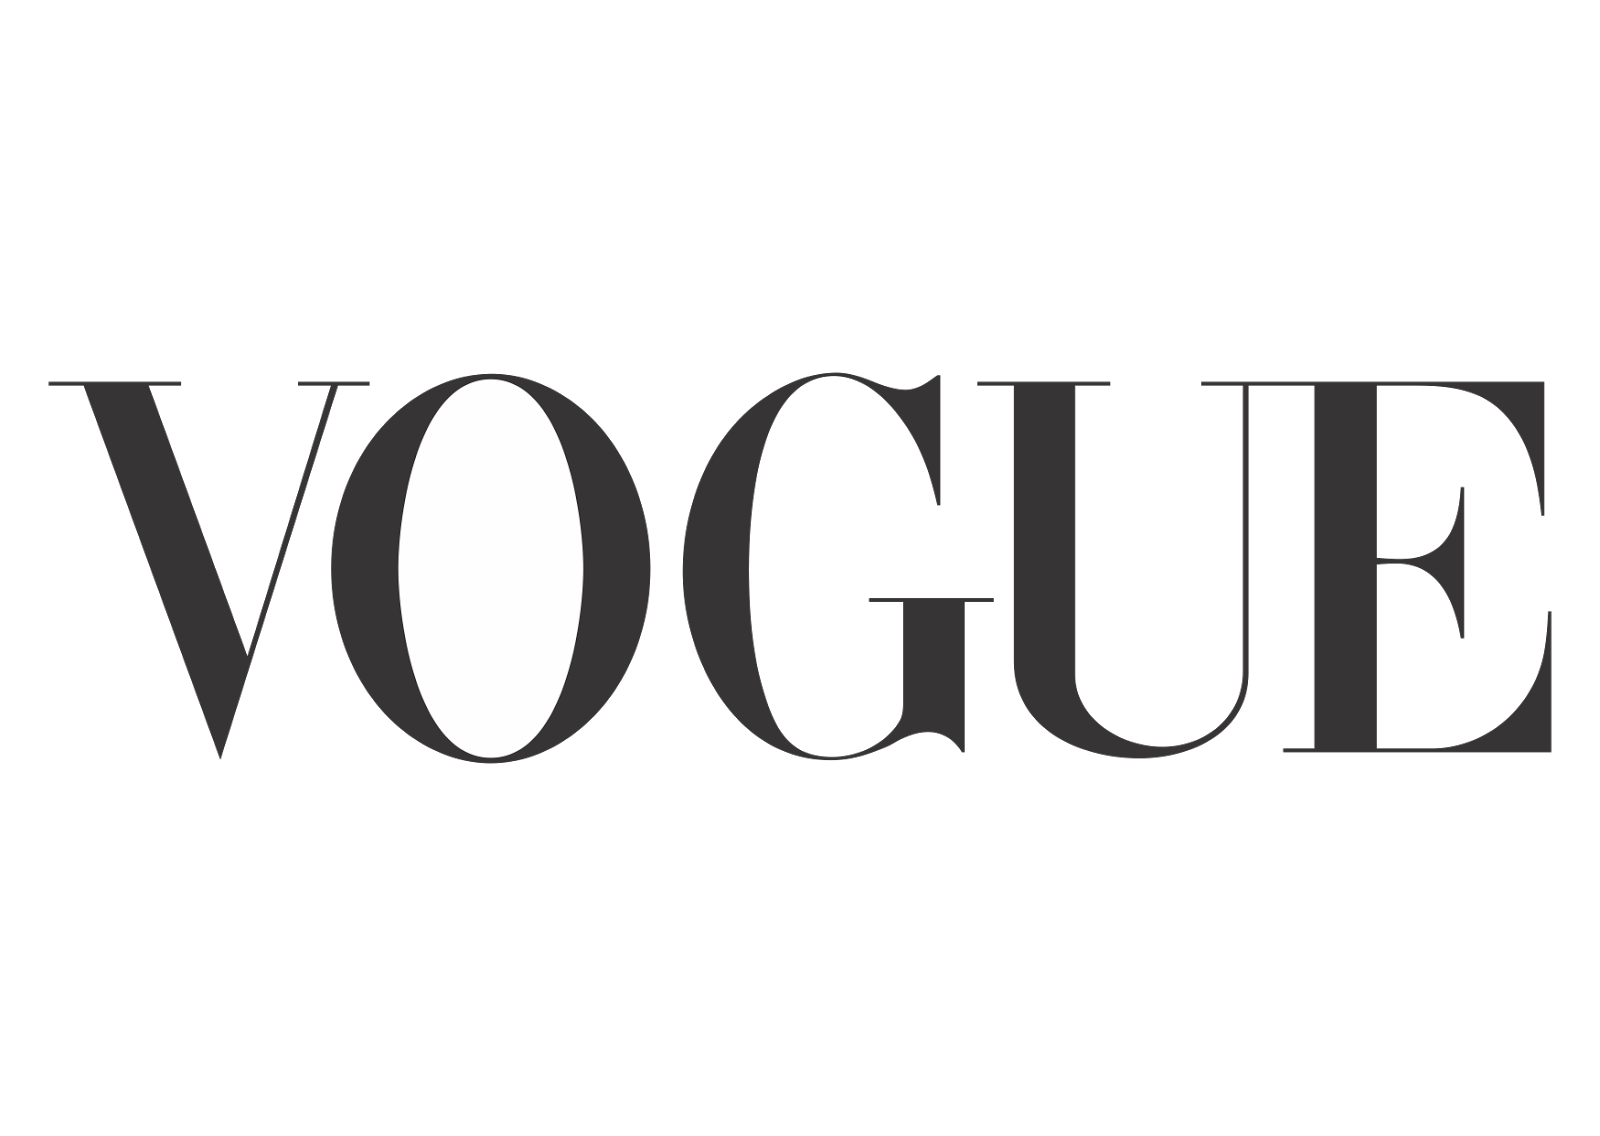 Vogue-logo-vector.png